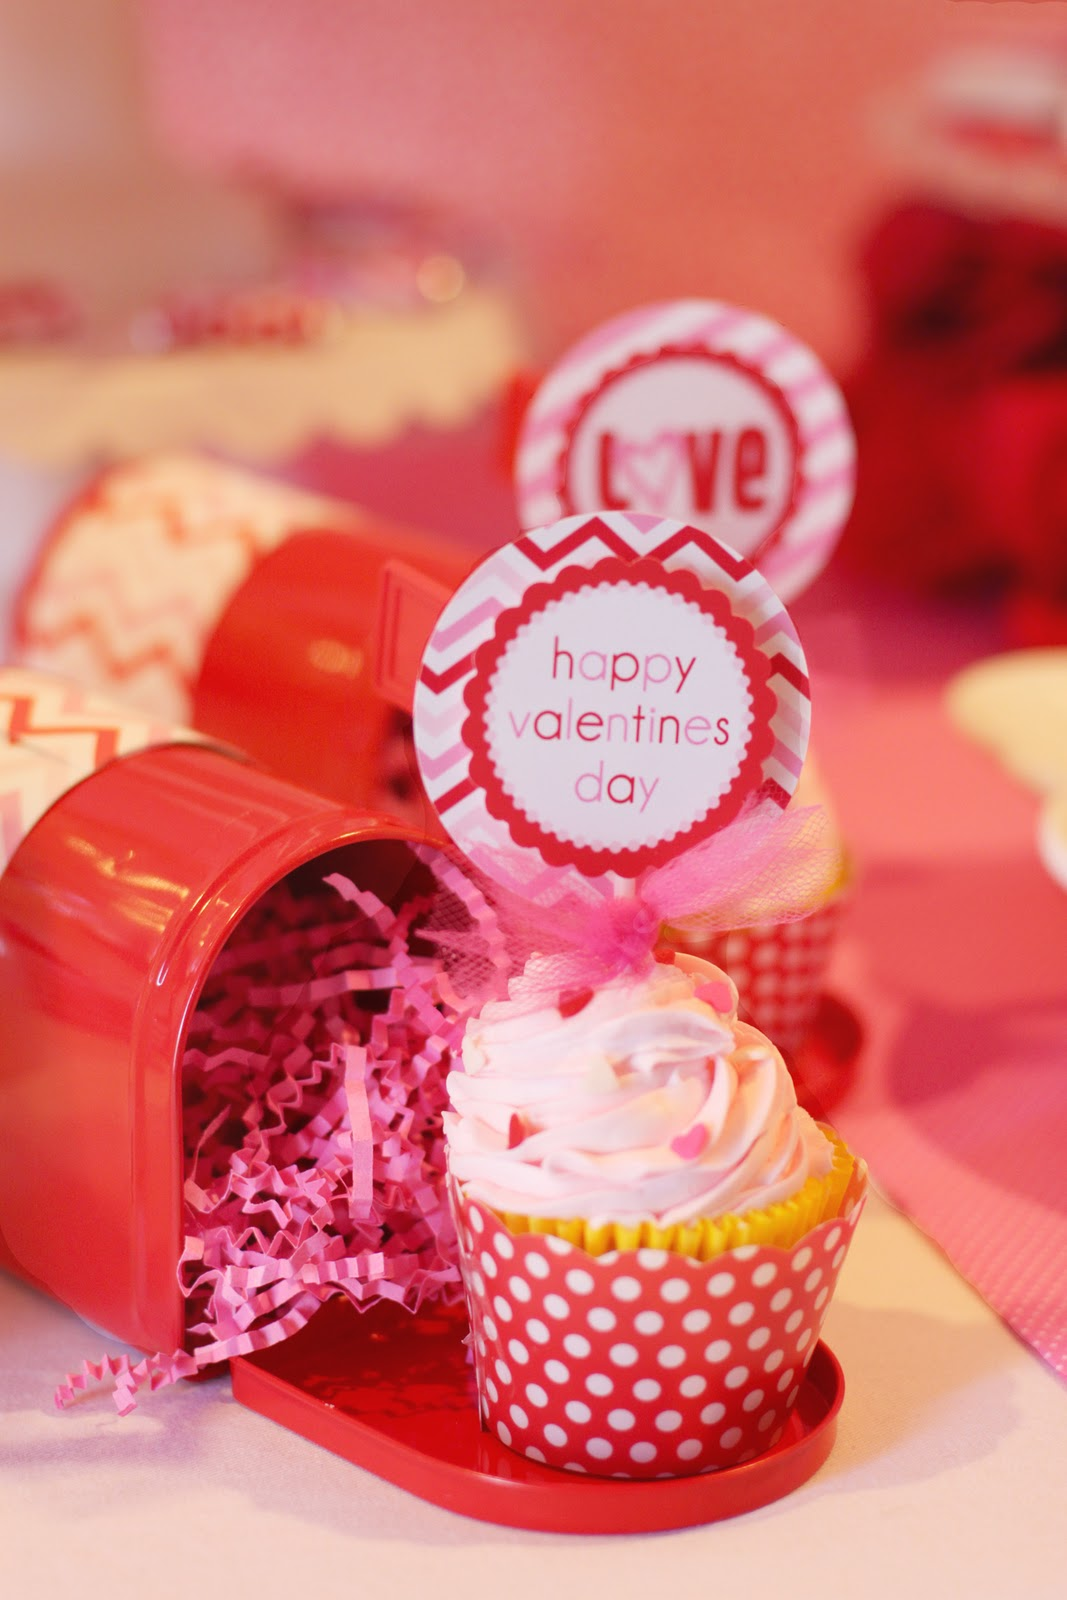 Valentine's Party Ideas . Lots of creative, cute ideas for your next party!